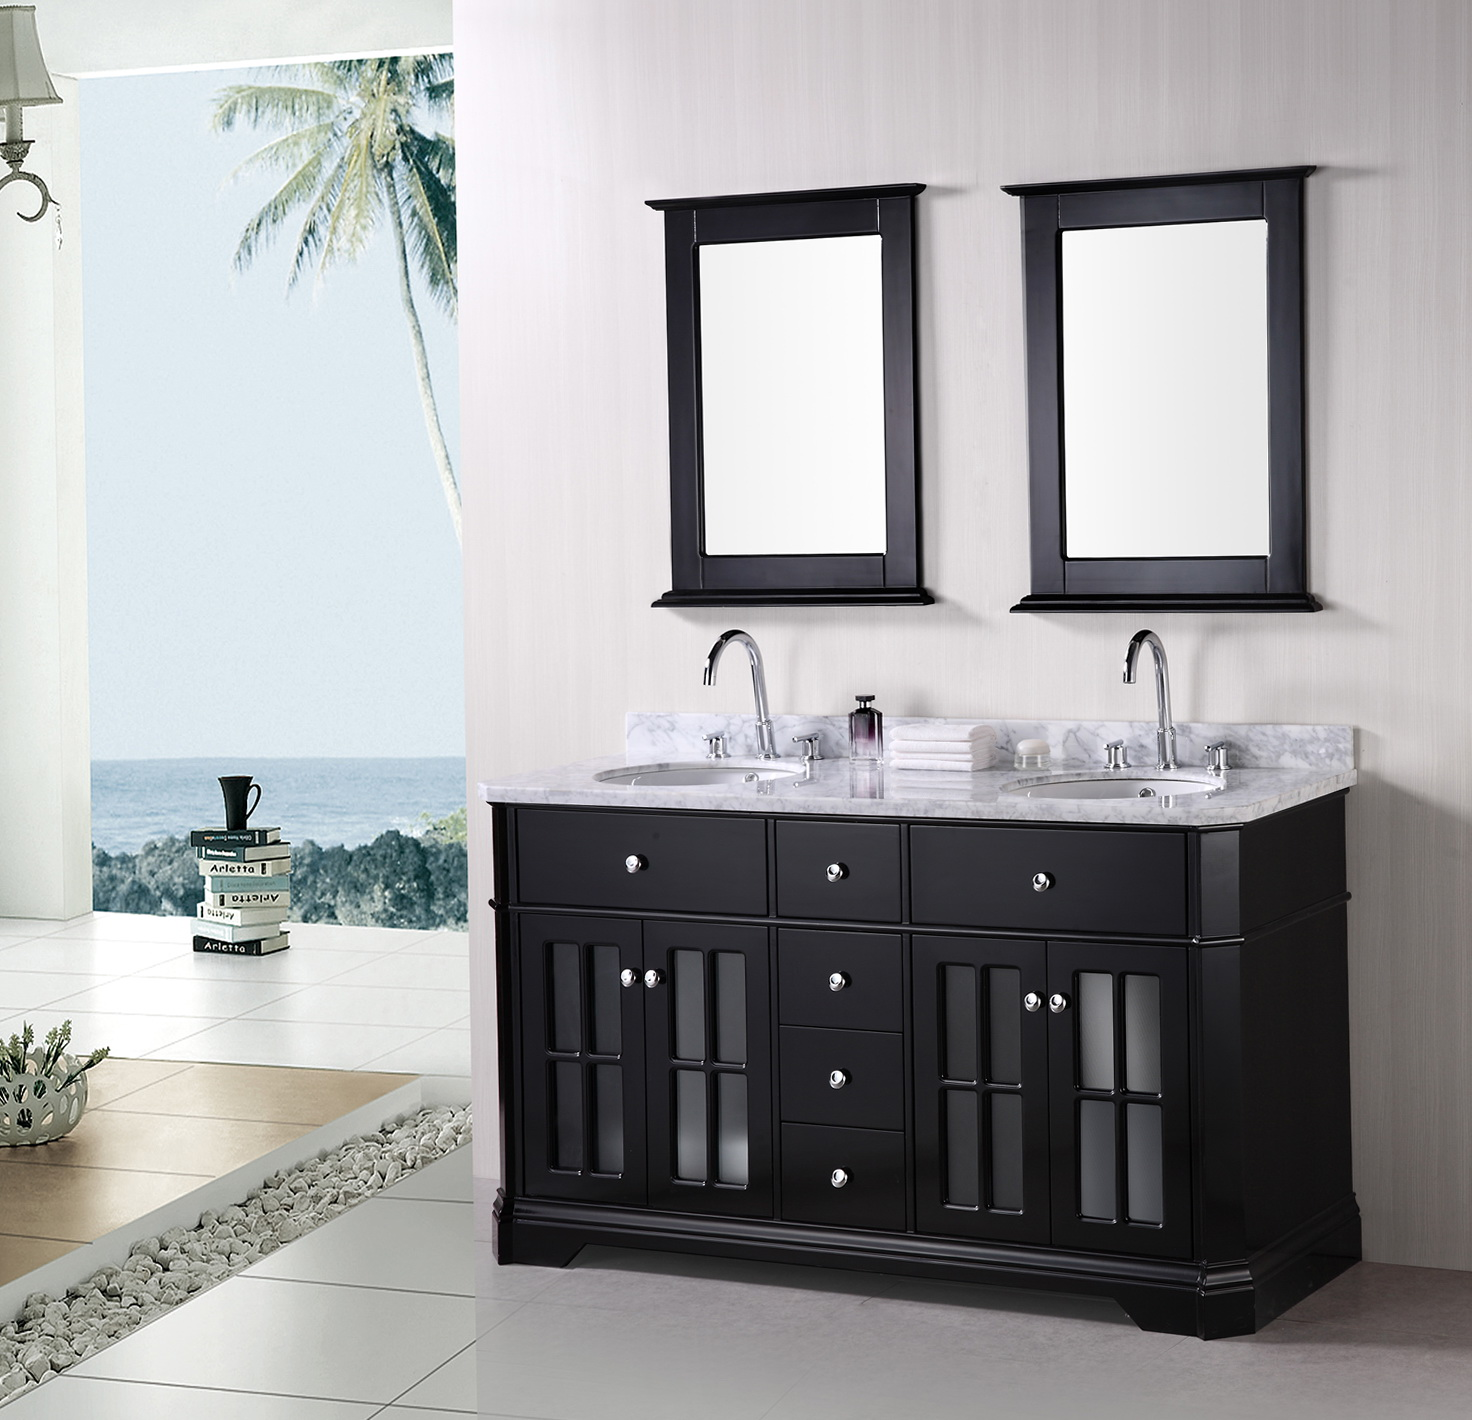 Black Bathroom Vanity With Sink